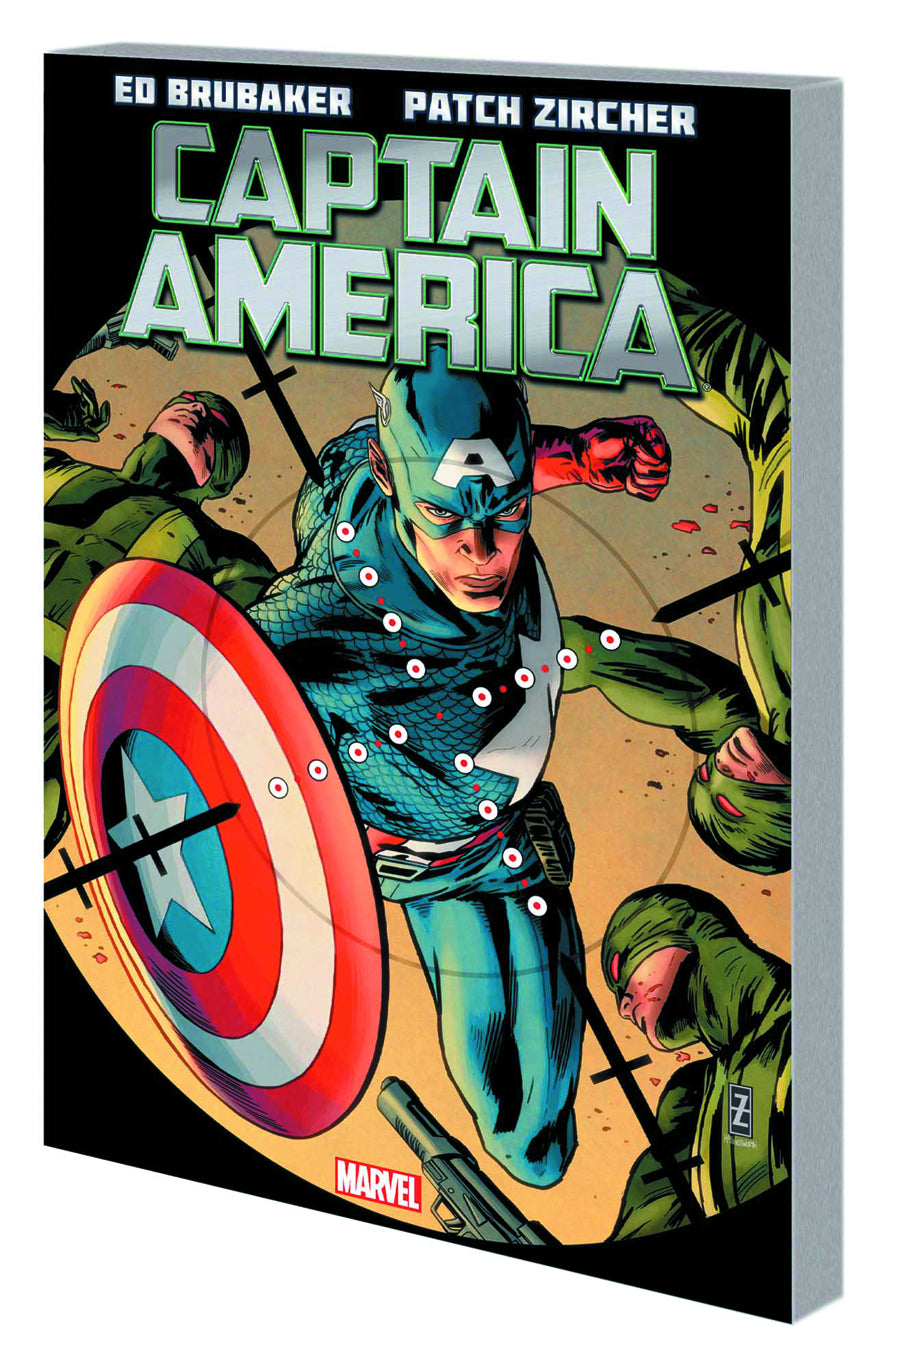 CAPTAIN AMERICA BY ED BRUBAKER TP VOL 03 | Game Master's Emporium (The New GME)